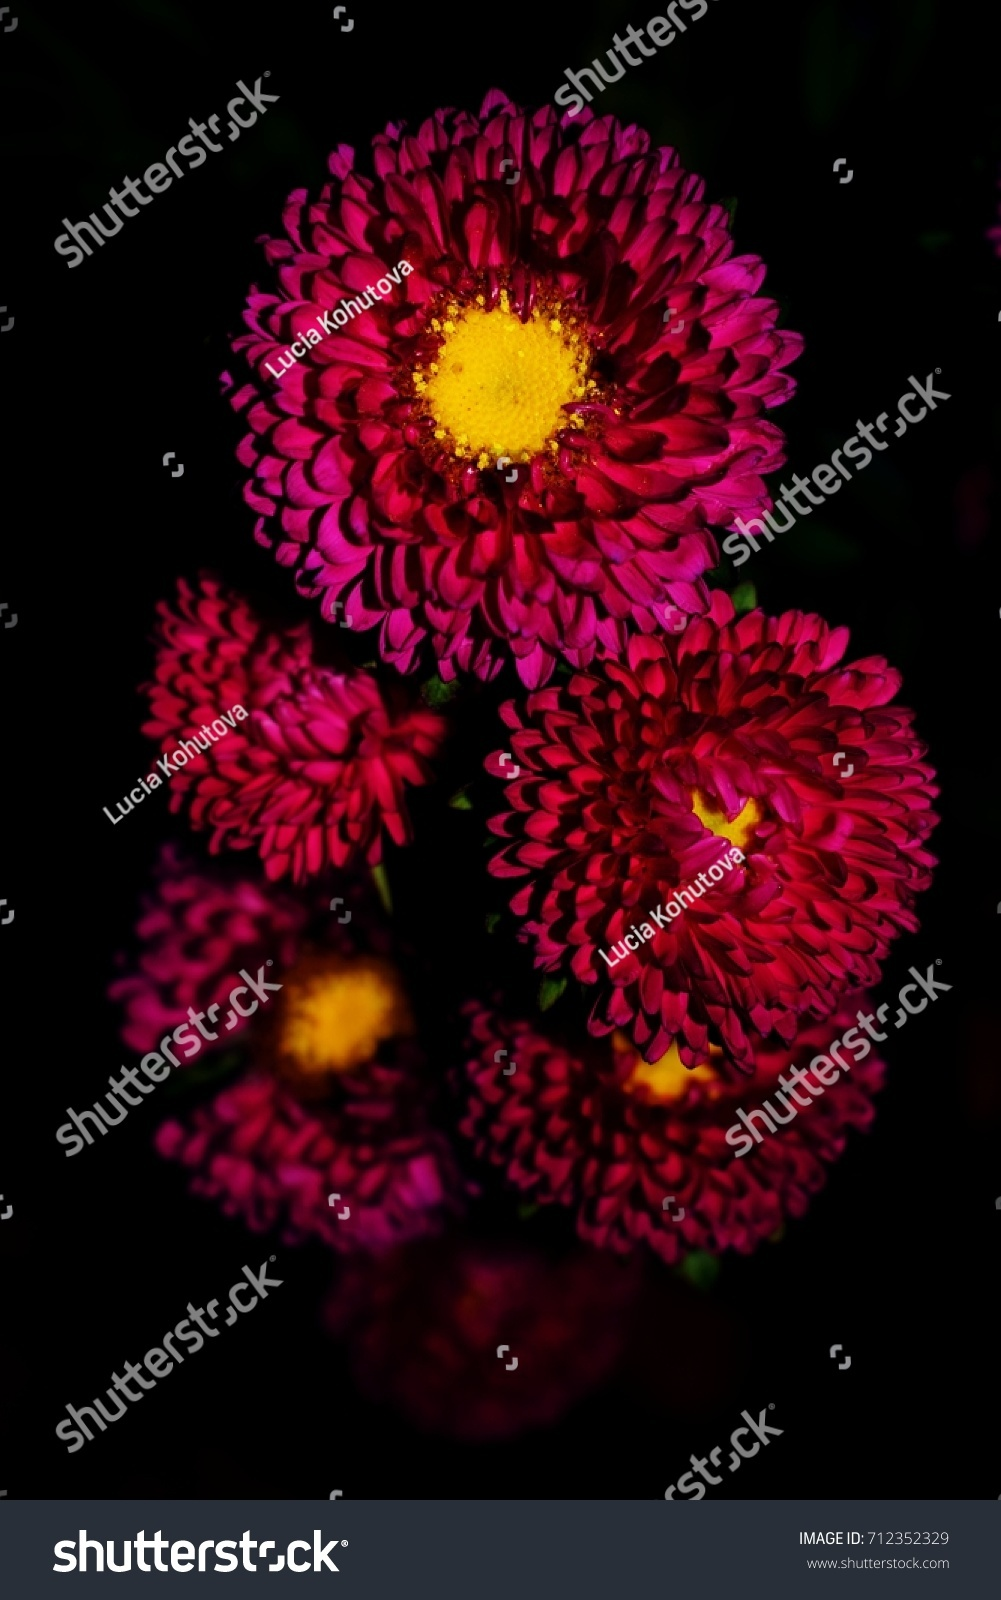 Pink daisylike flowers aster on black stock photo edit now pink daisy like flowers of aster on black background izmirmasajfo